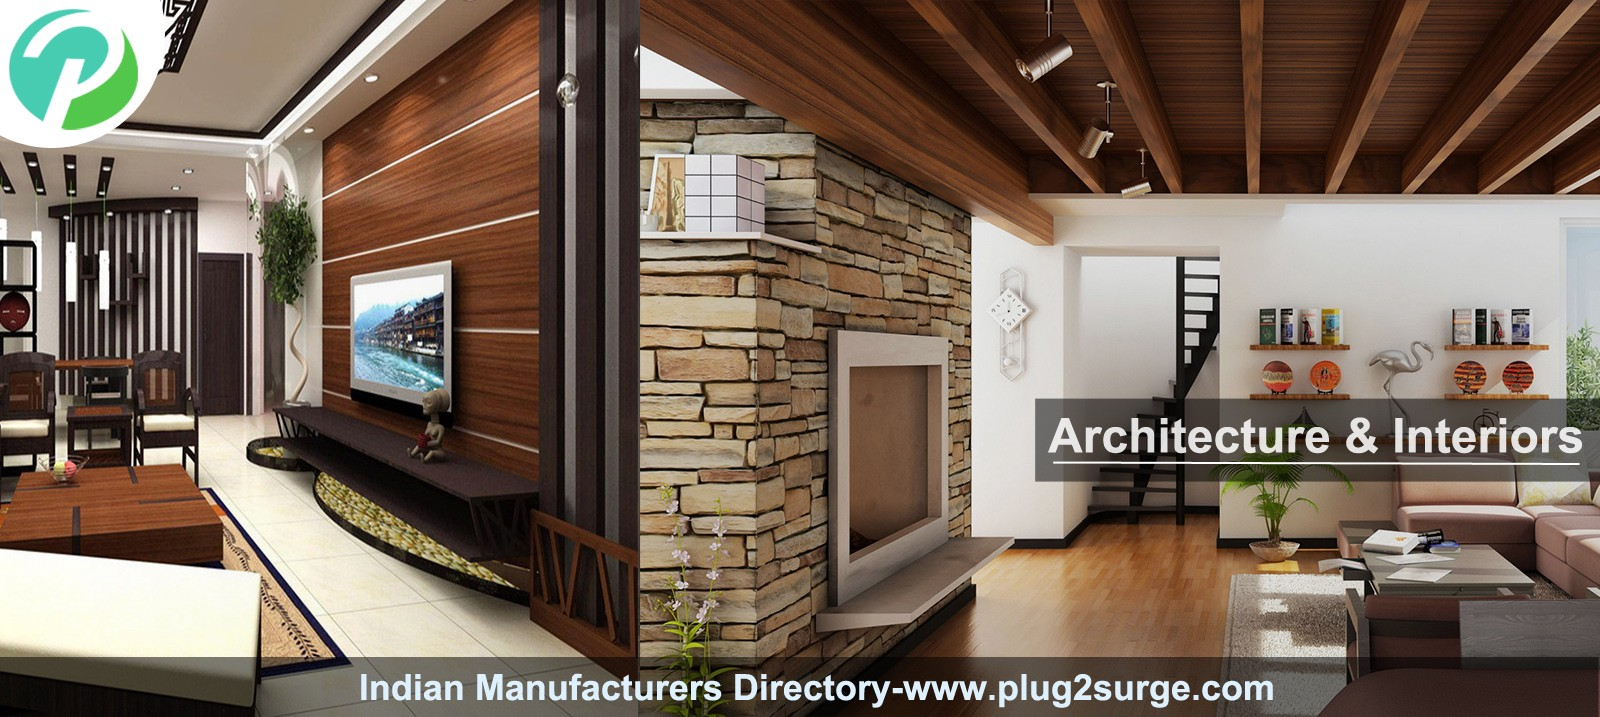 Indian Manufacturers Directory Architecture Interiors